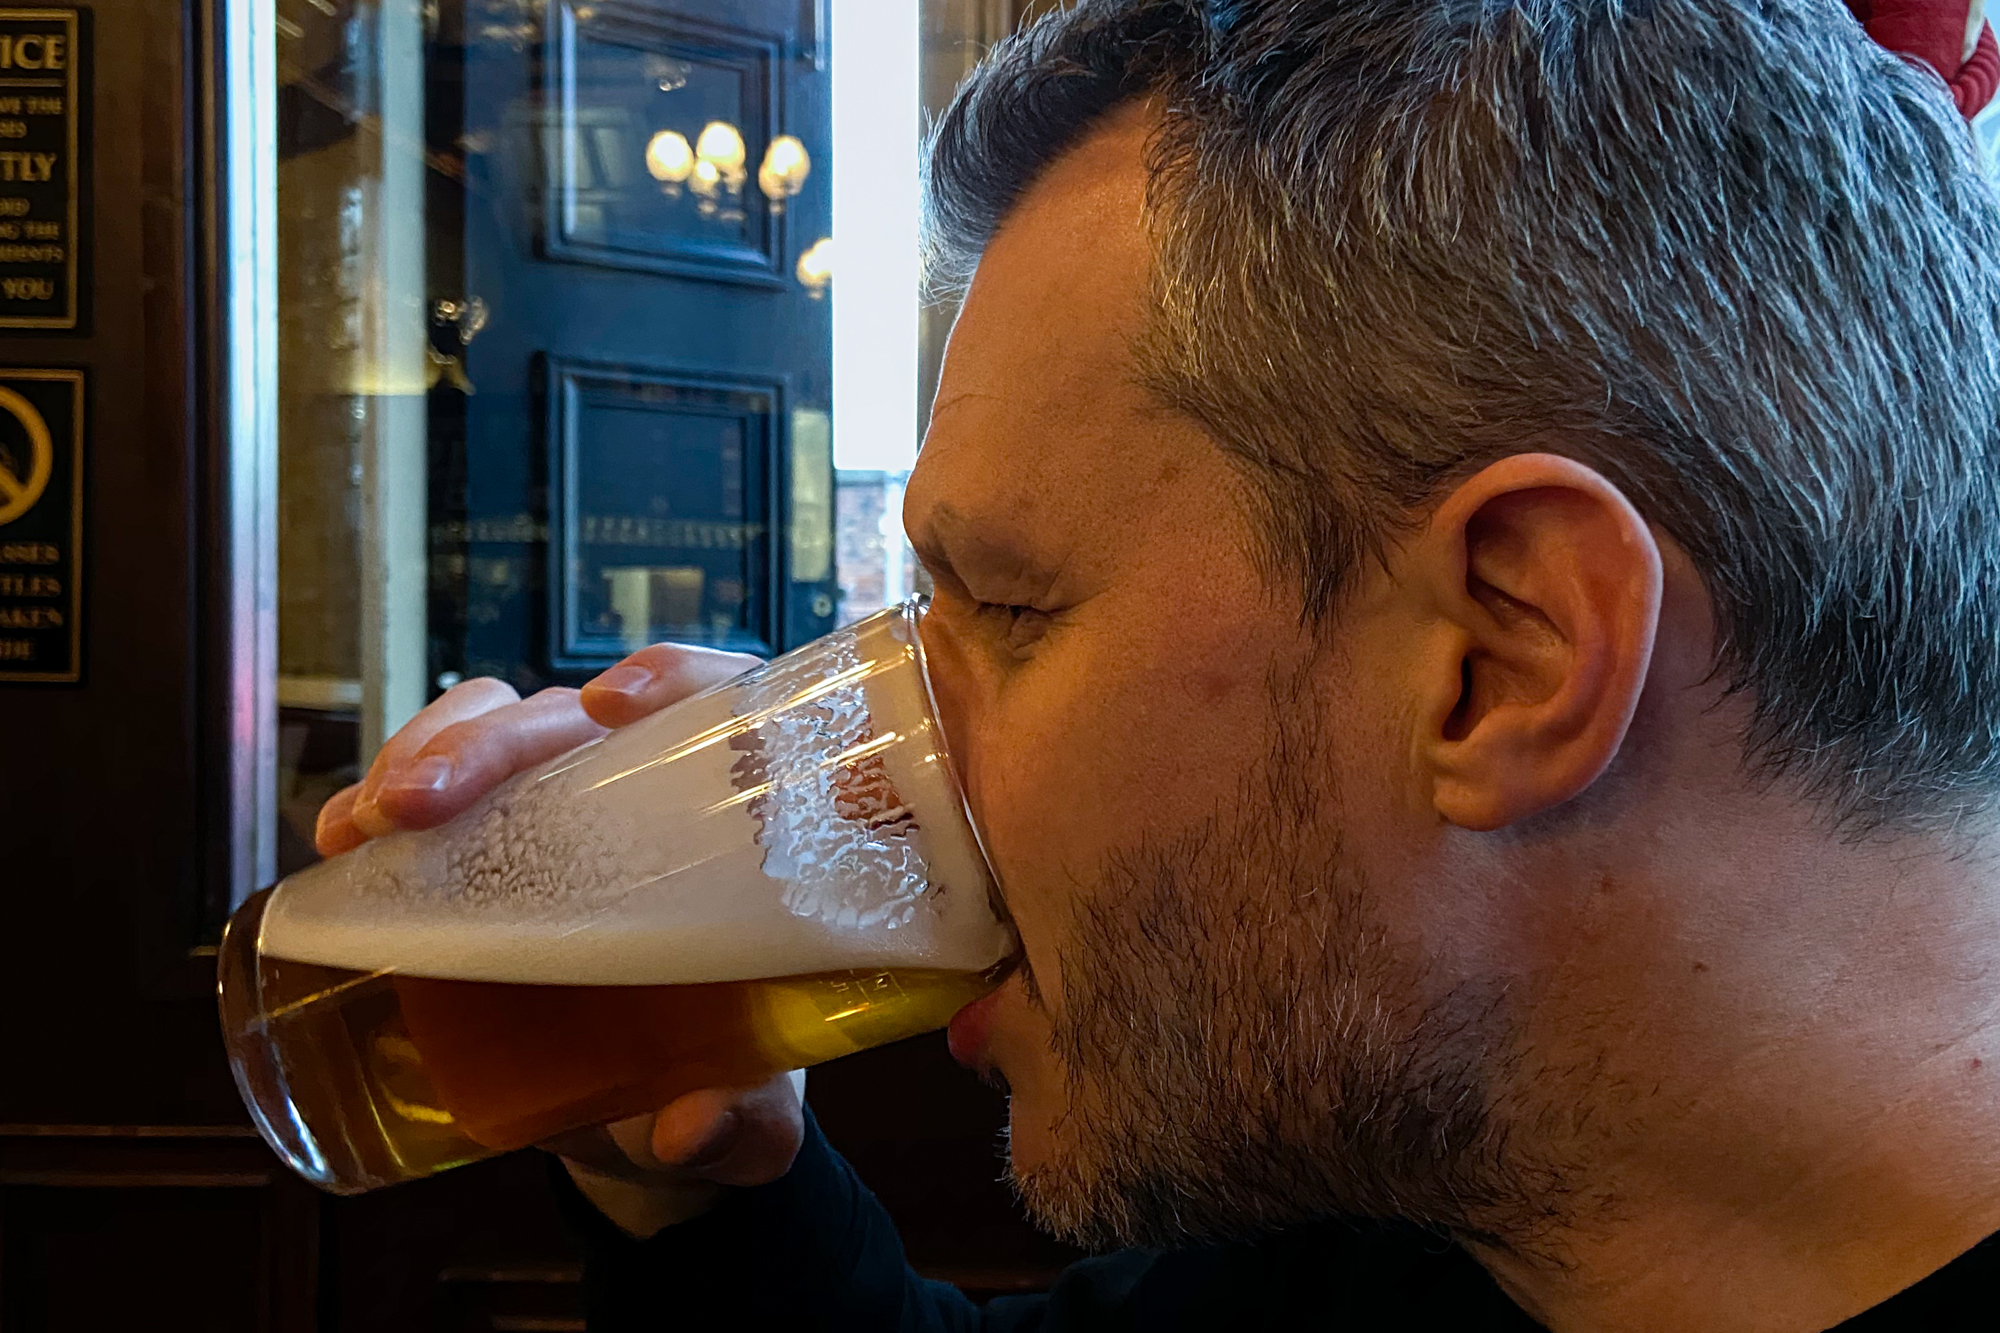 Drinking a pint of Bitter at the Marble Arch in Manchester